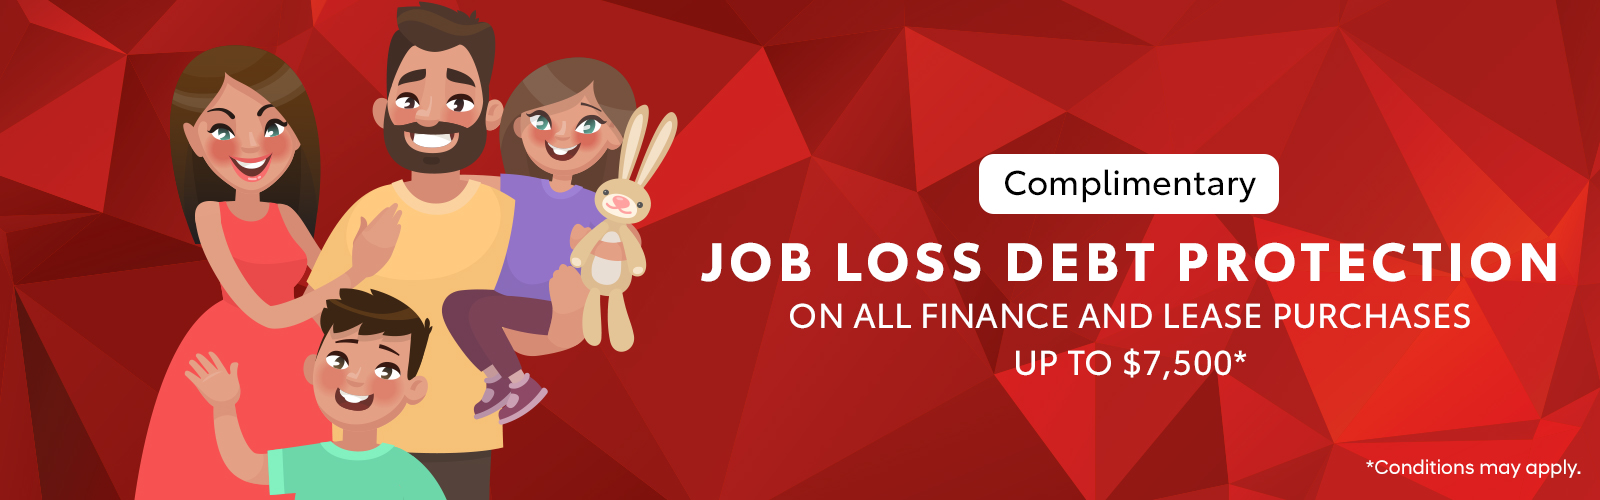 Job-Loss Debt Protection